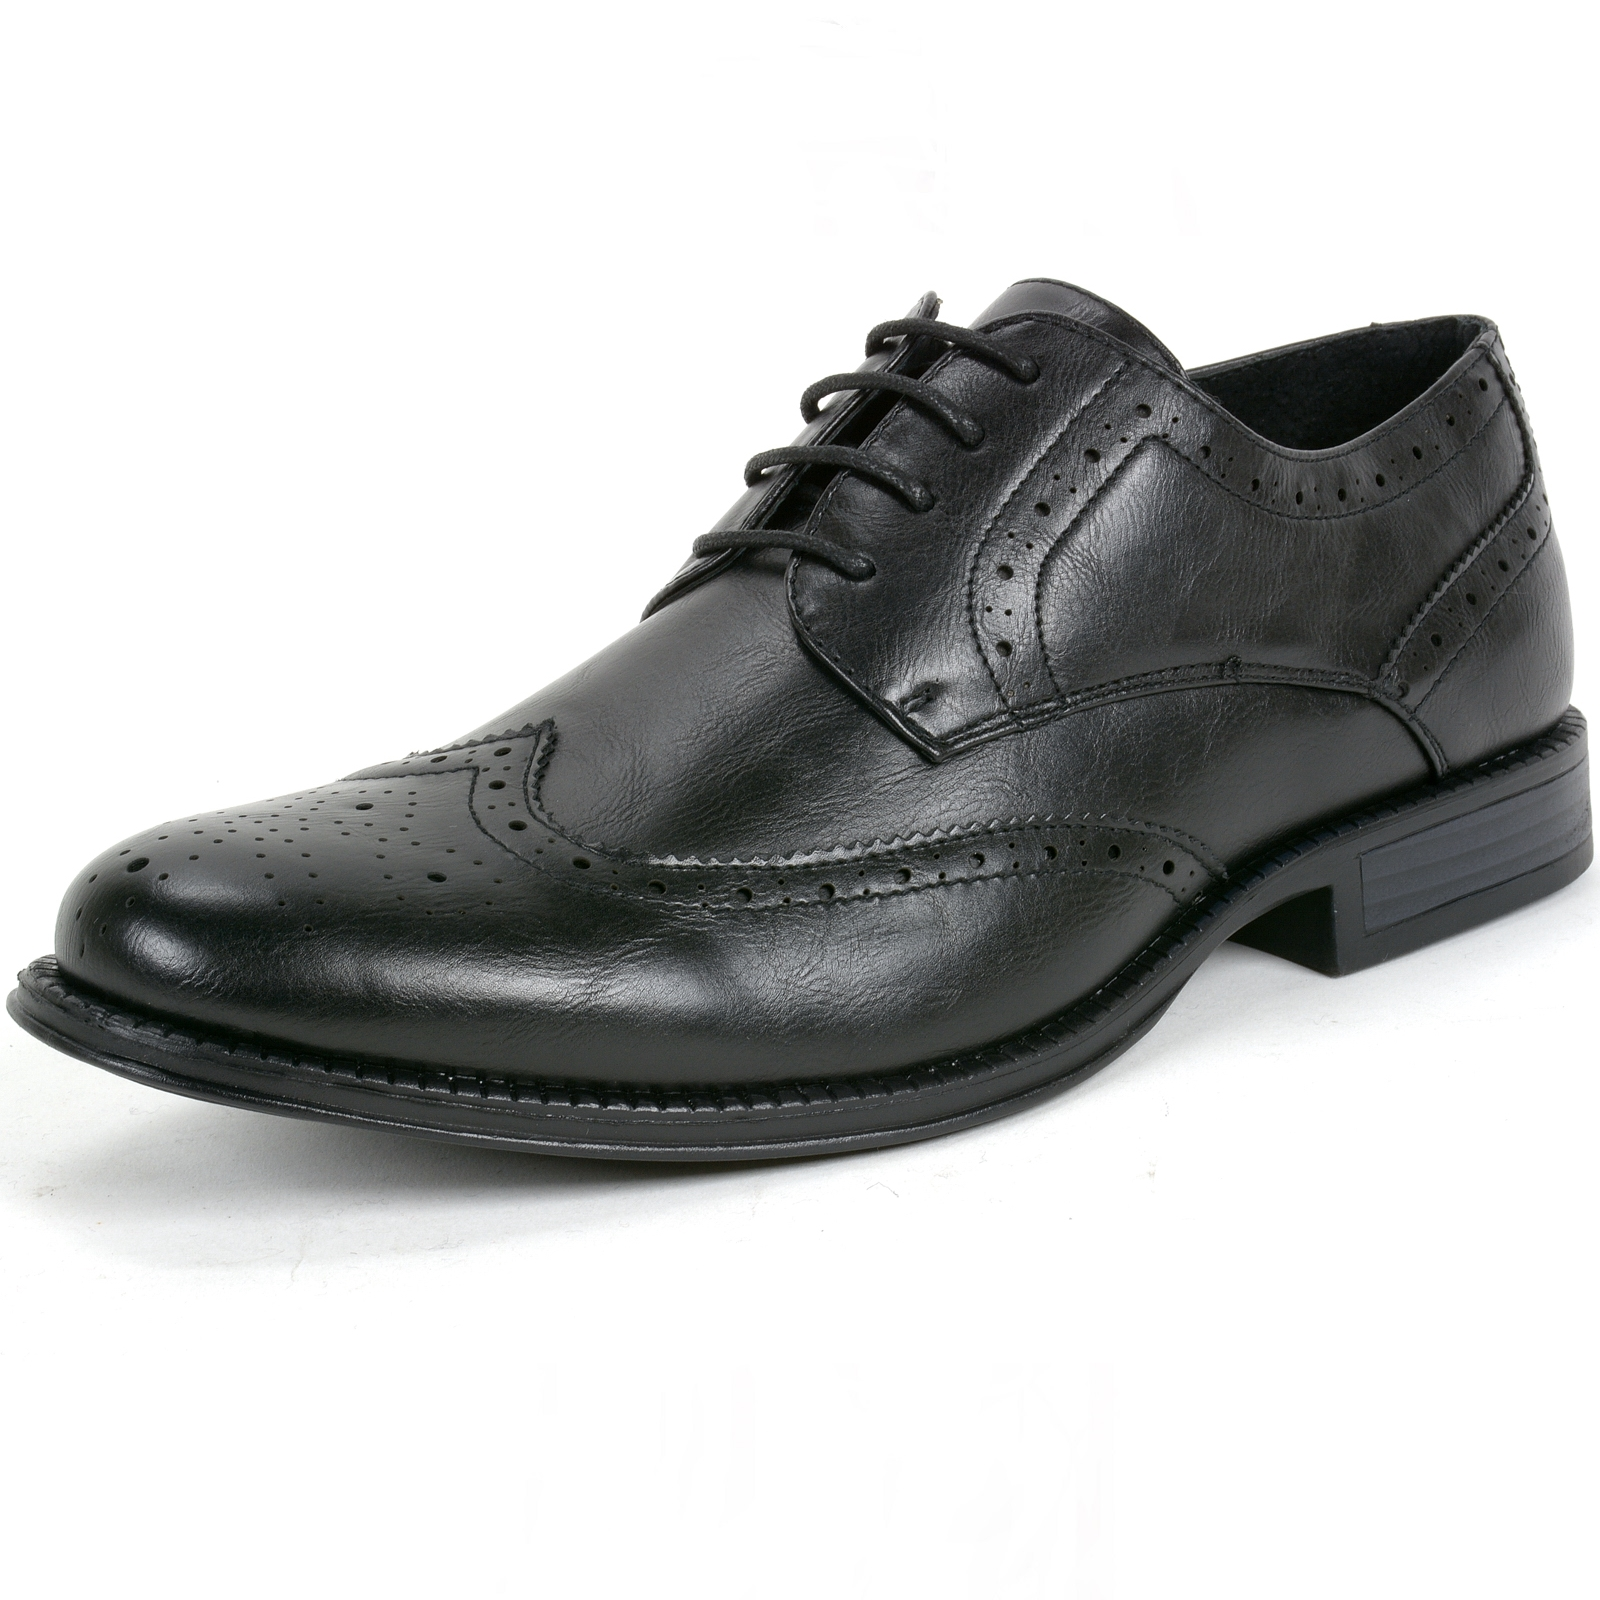 Alpine Swiss Zurich Men's Oxfords Brogue Medallion Wing Tip Lace Up Dress Shoes